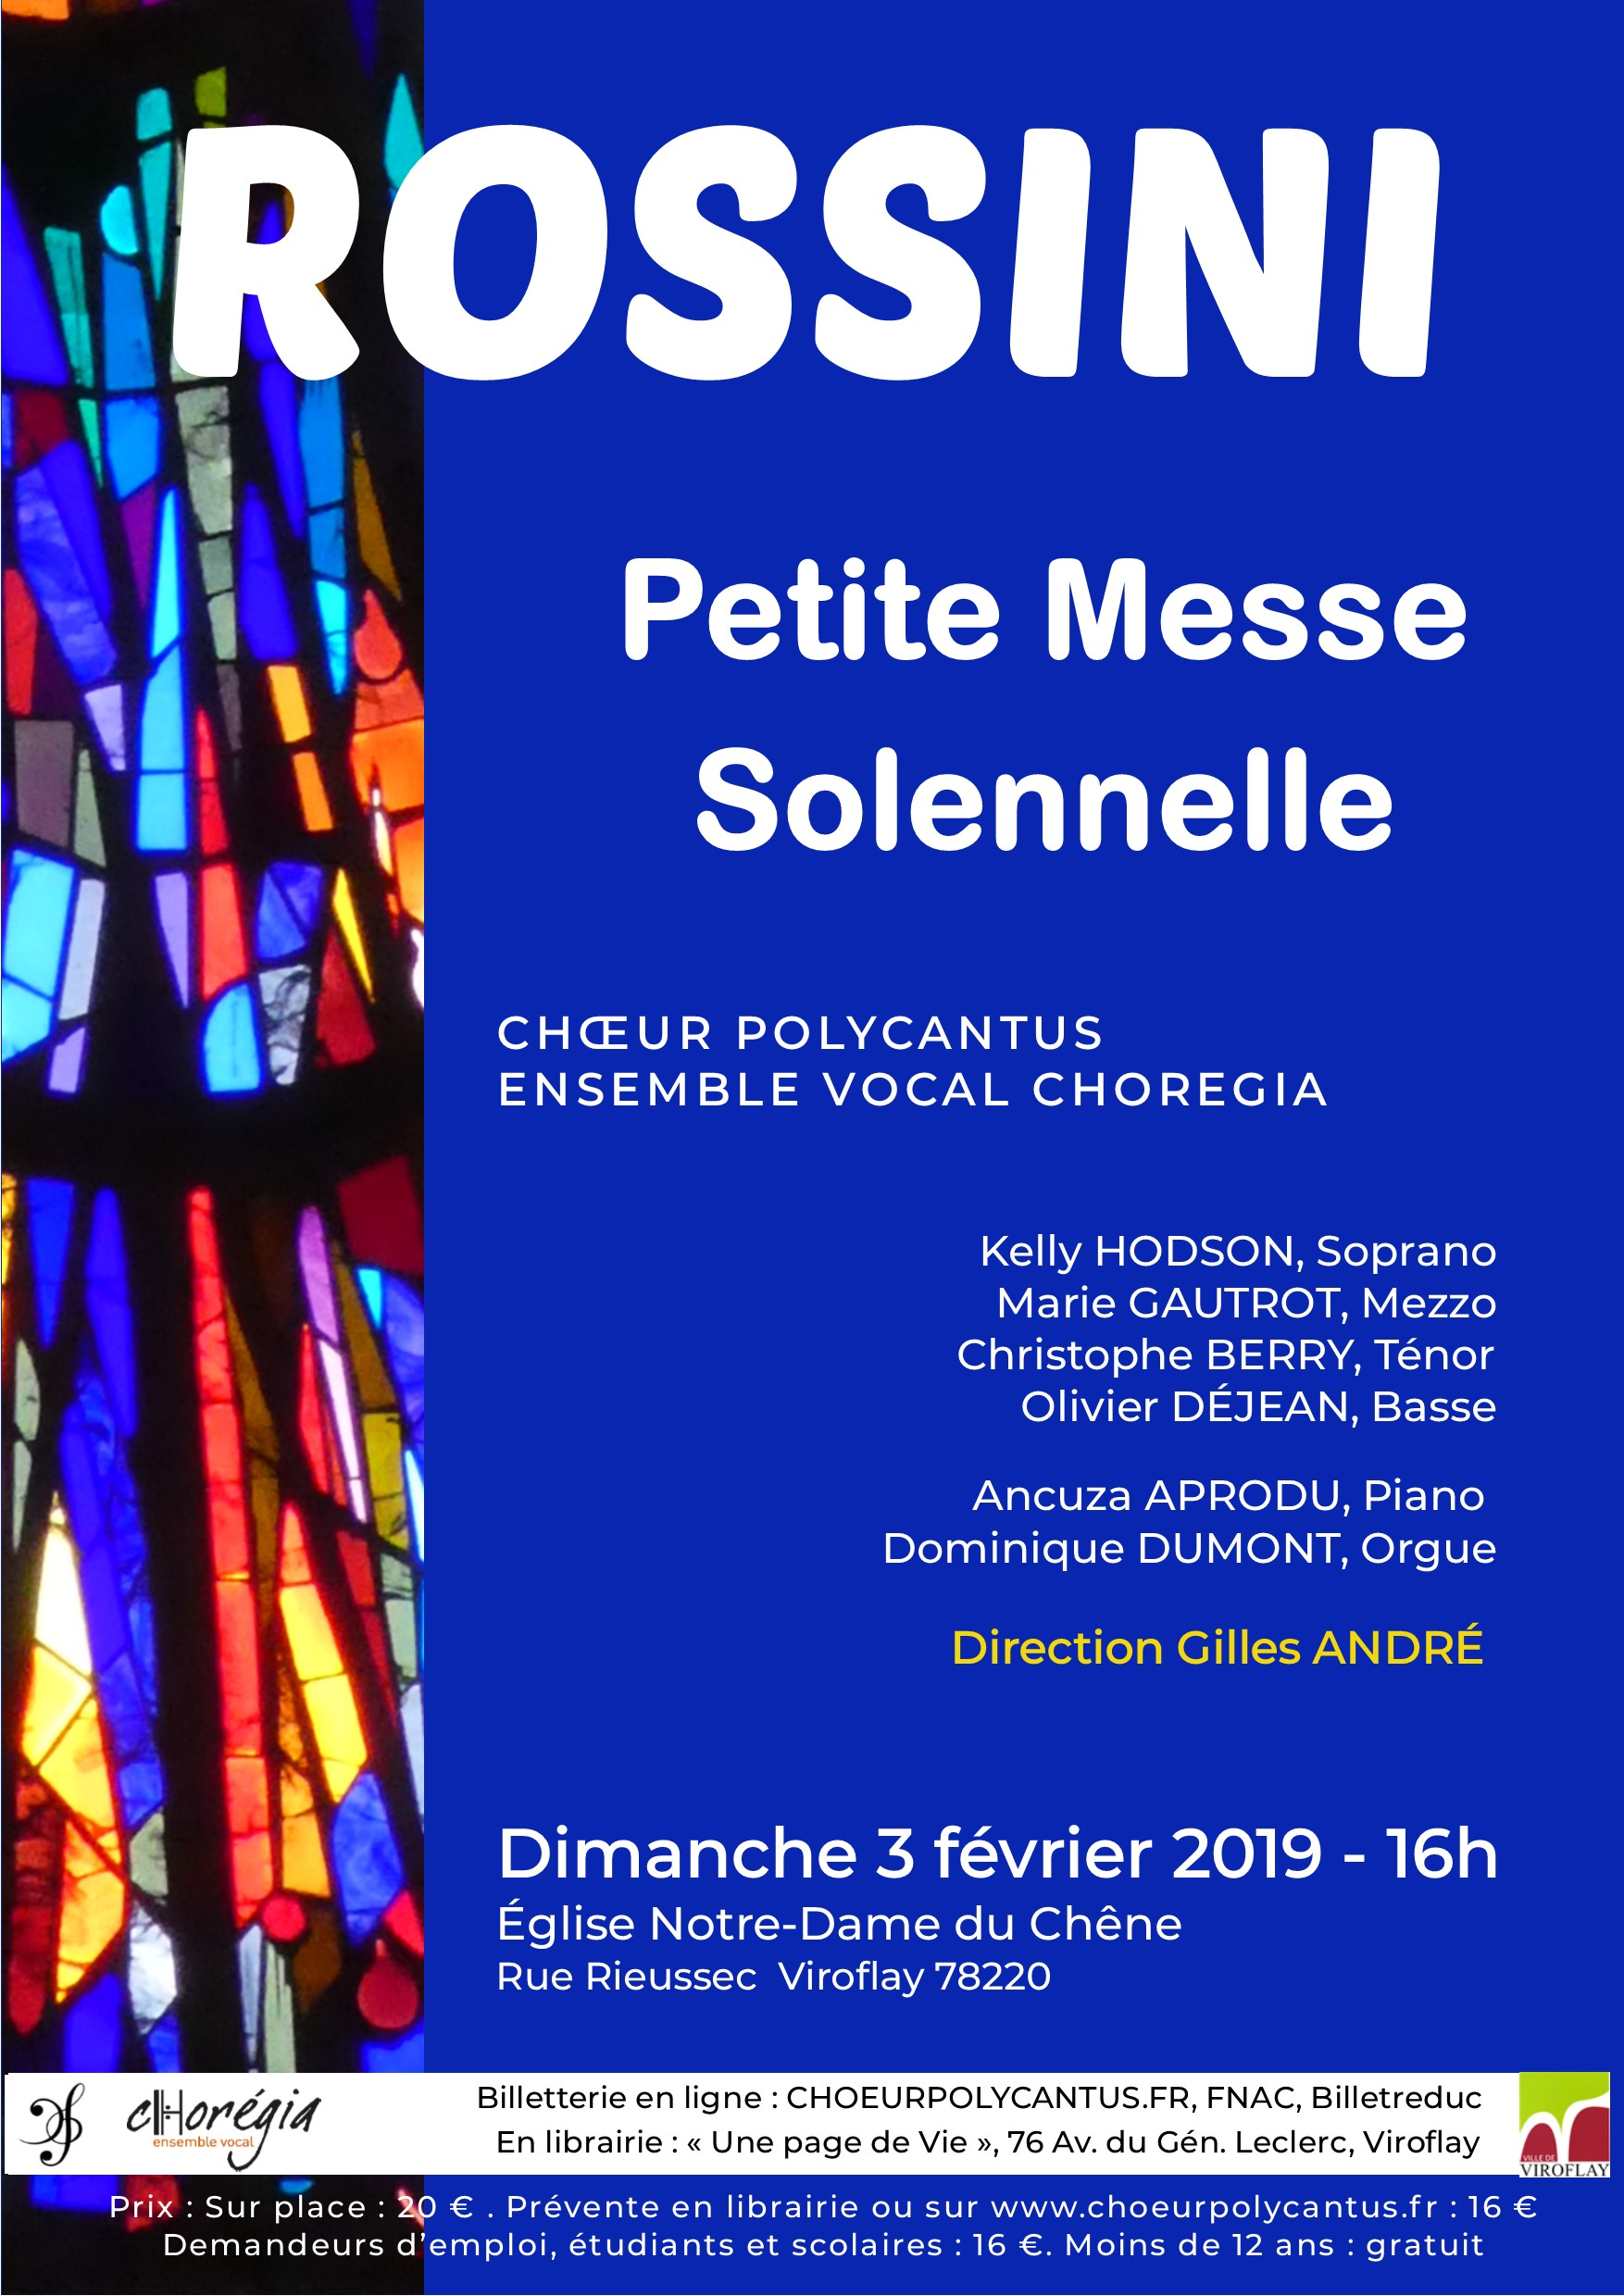 Petite messe solennelle Rossini Viroflay